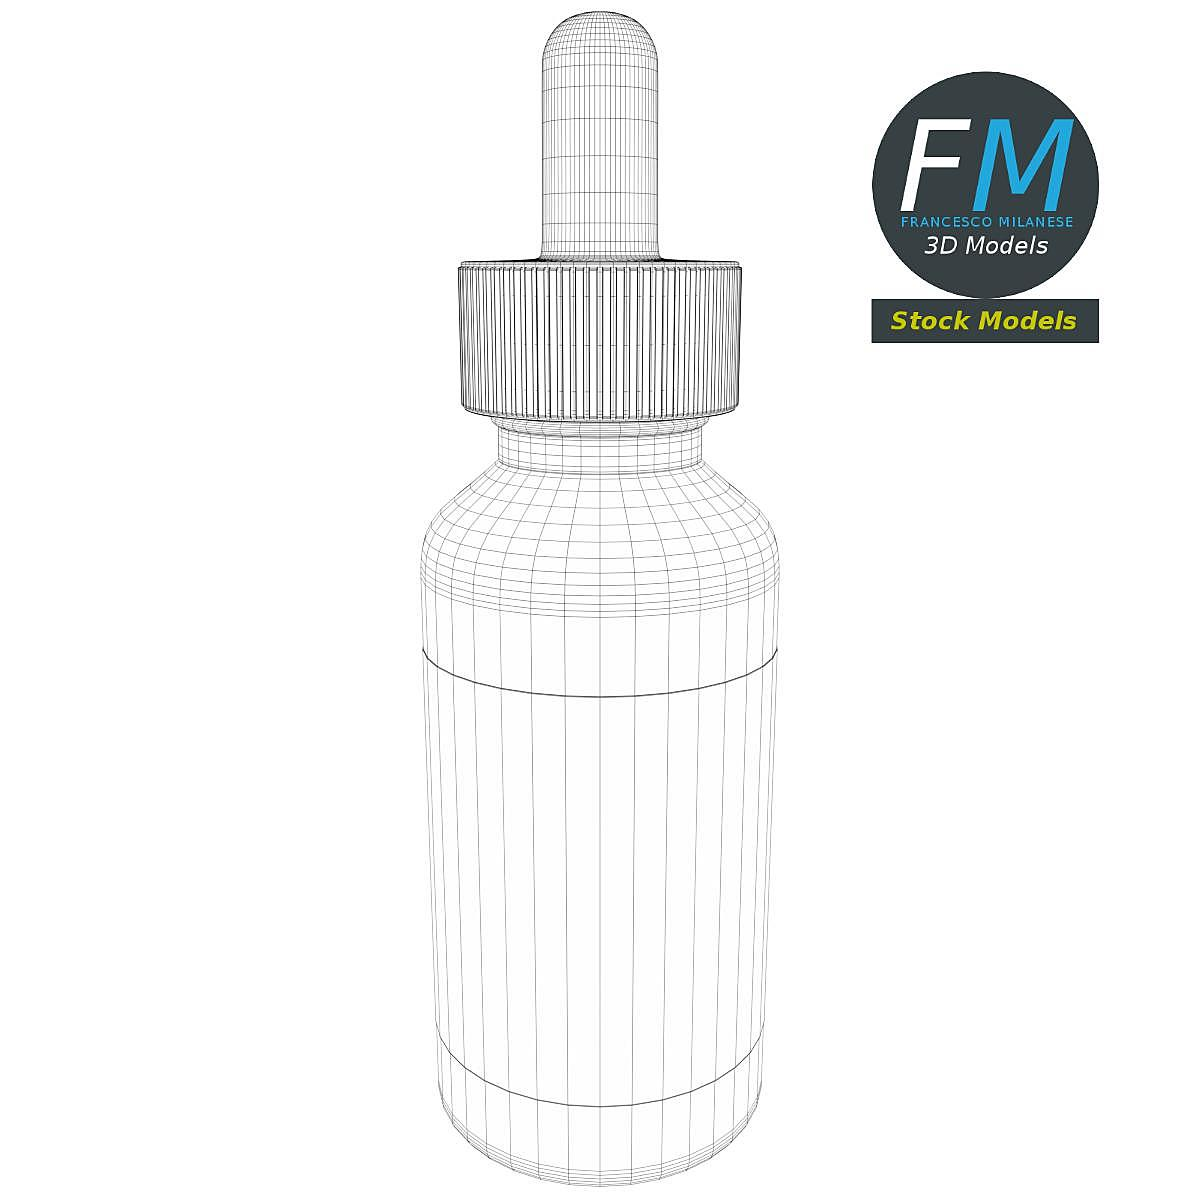 Dropper bottle with liquid and label